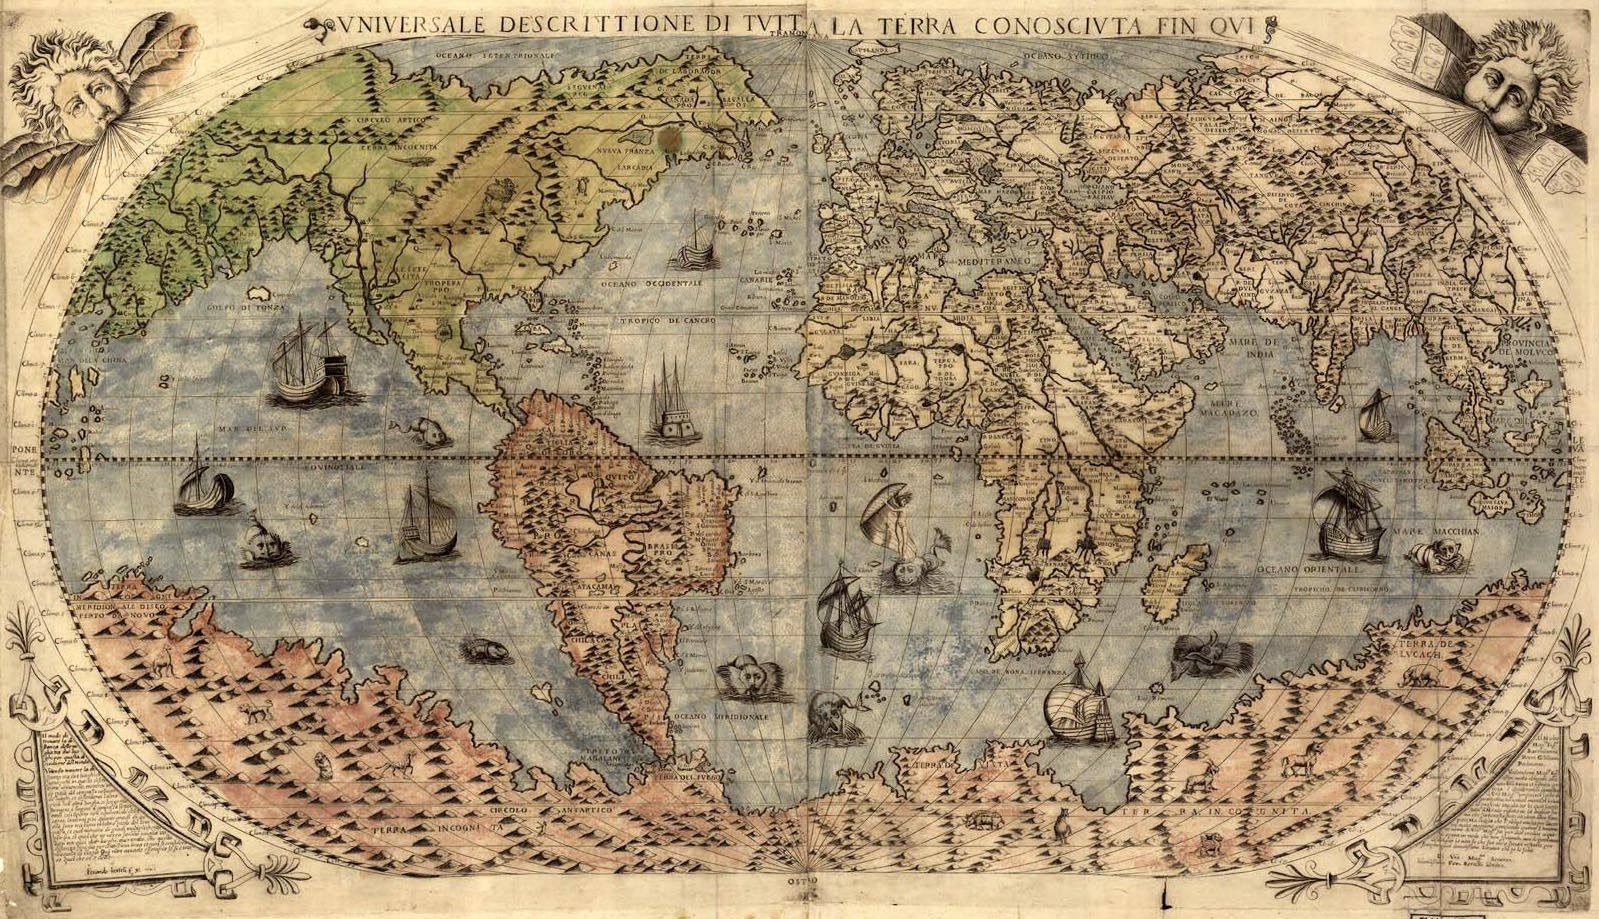 Old map of the world from the 1500s mapas antiguos old maps old map of the world from the 1500s gumiabroncs Images